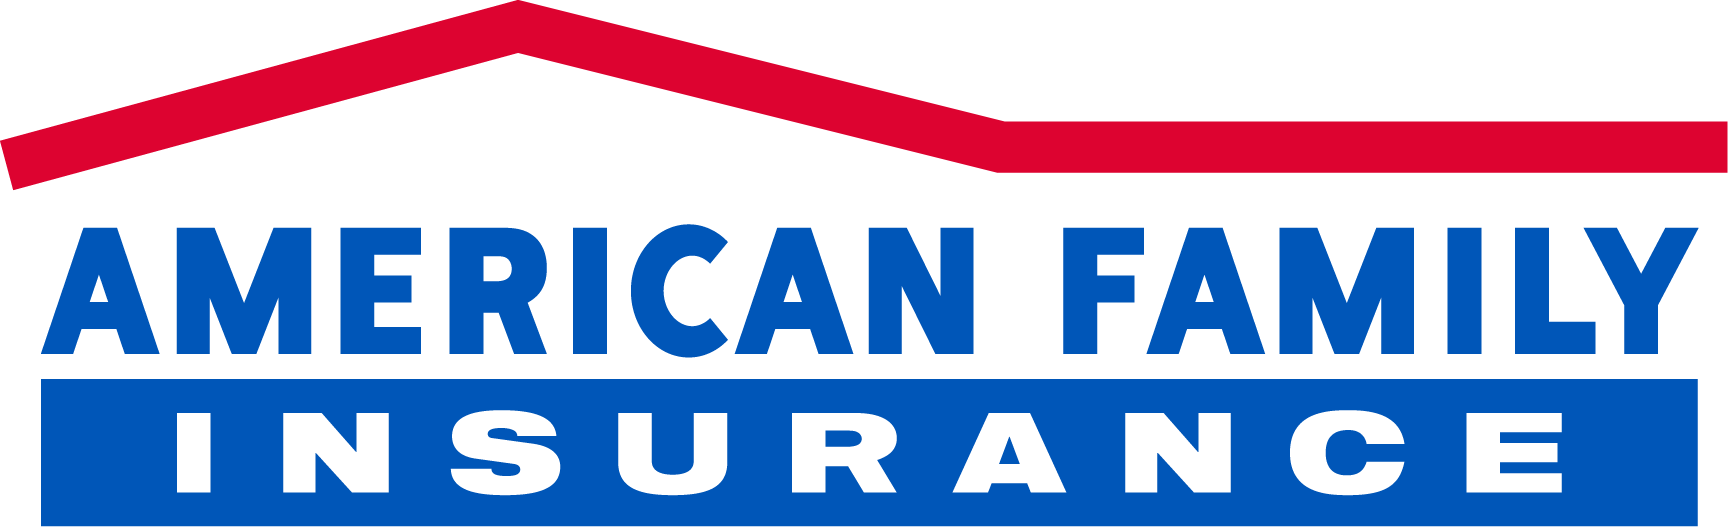 logo_American Family Insurance.png